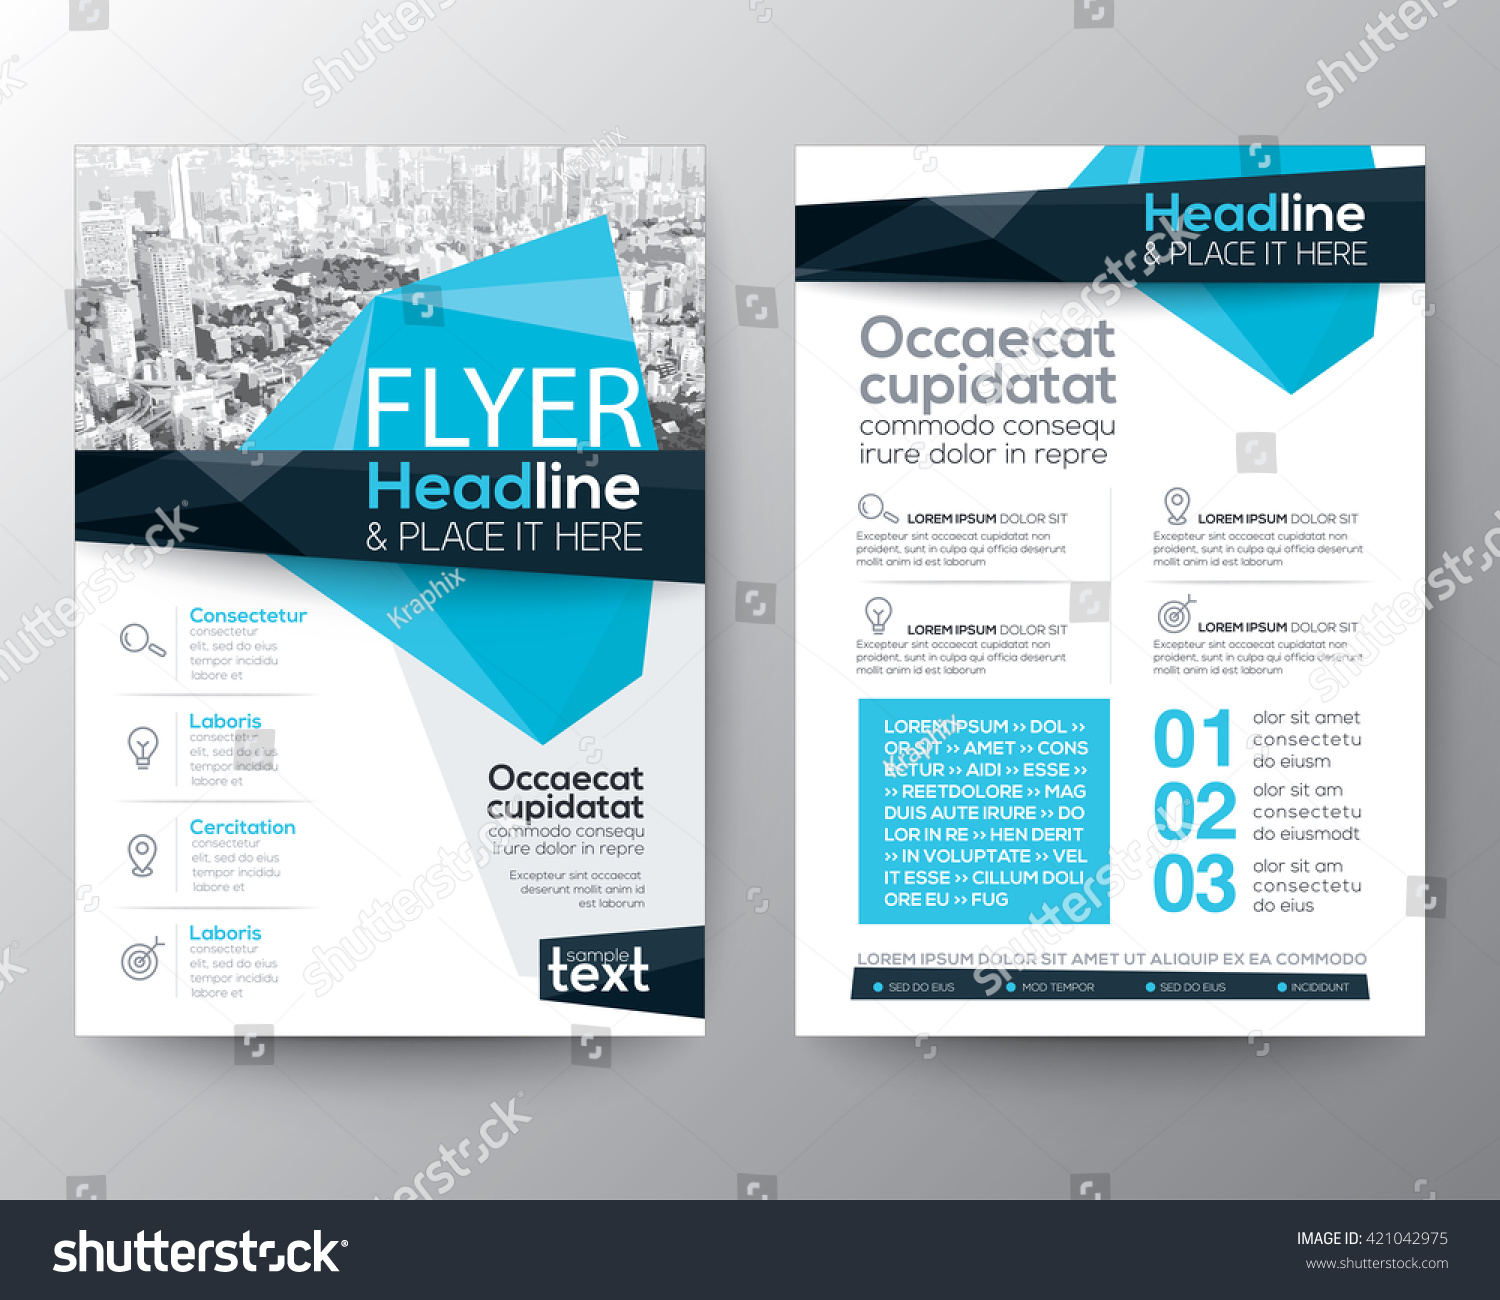 Poster design size - Abstract Low Polygon Background For Poster Brochure Flyer Design Layout Vector Template In A4 Size